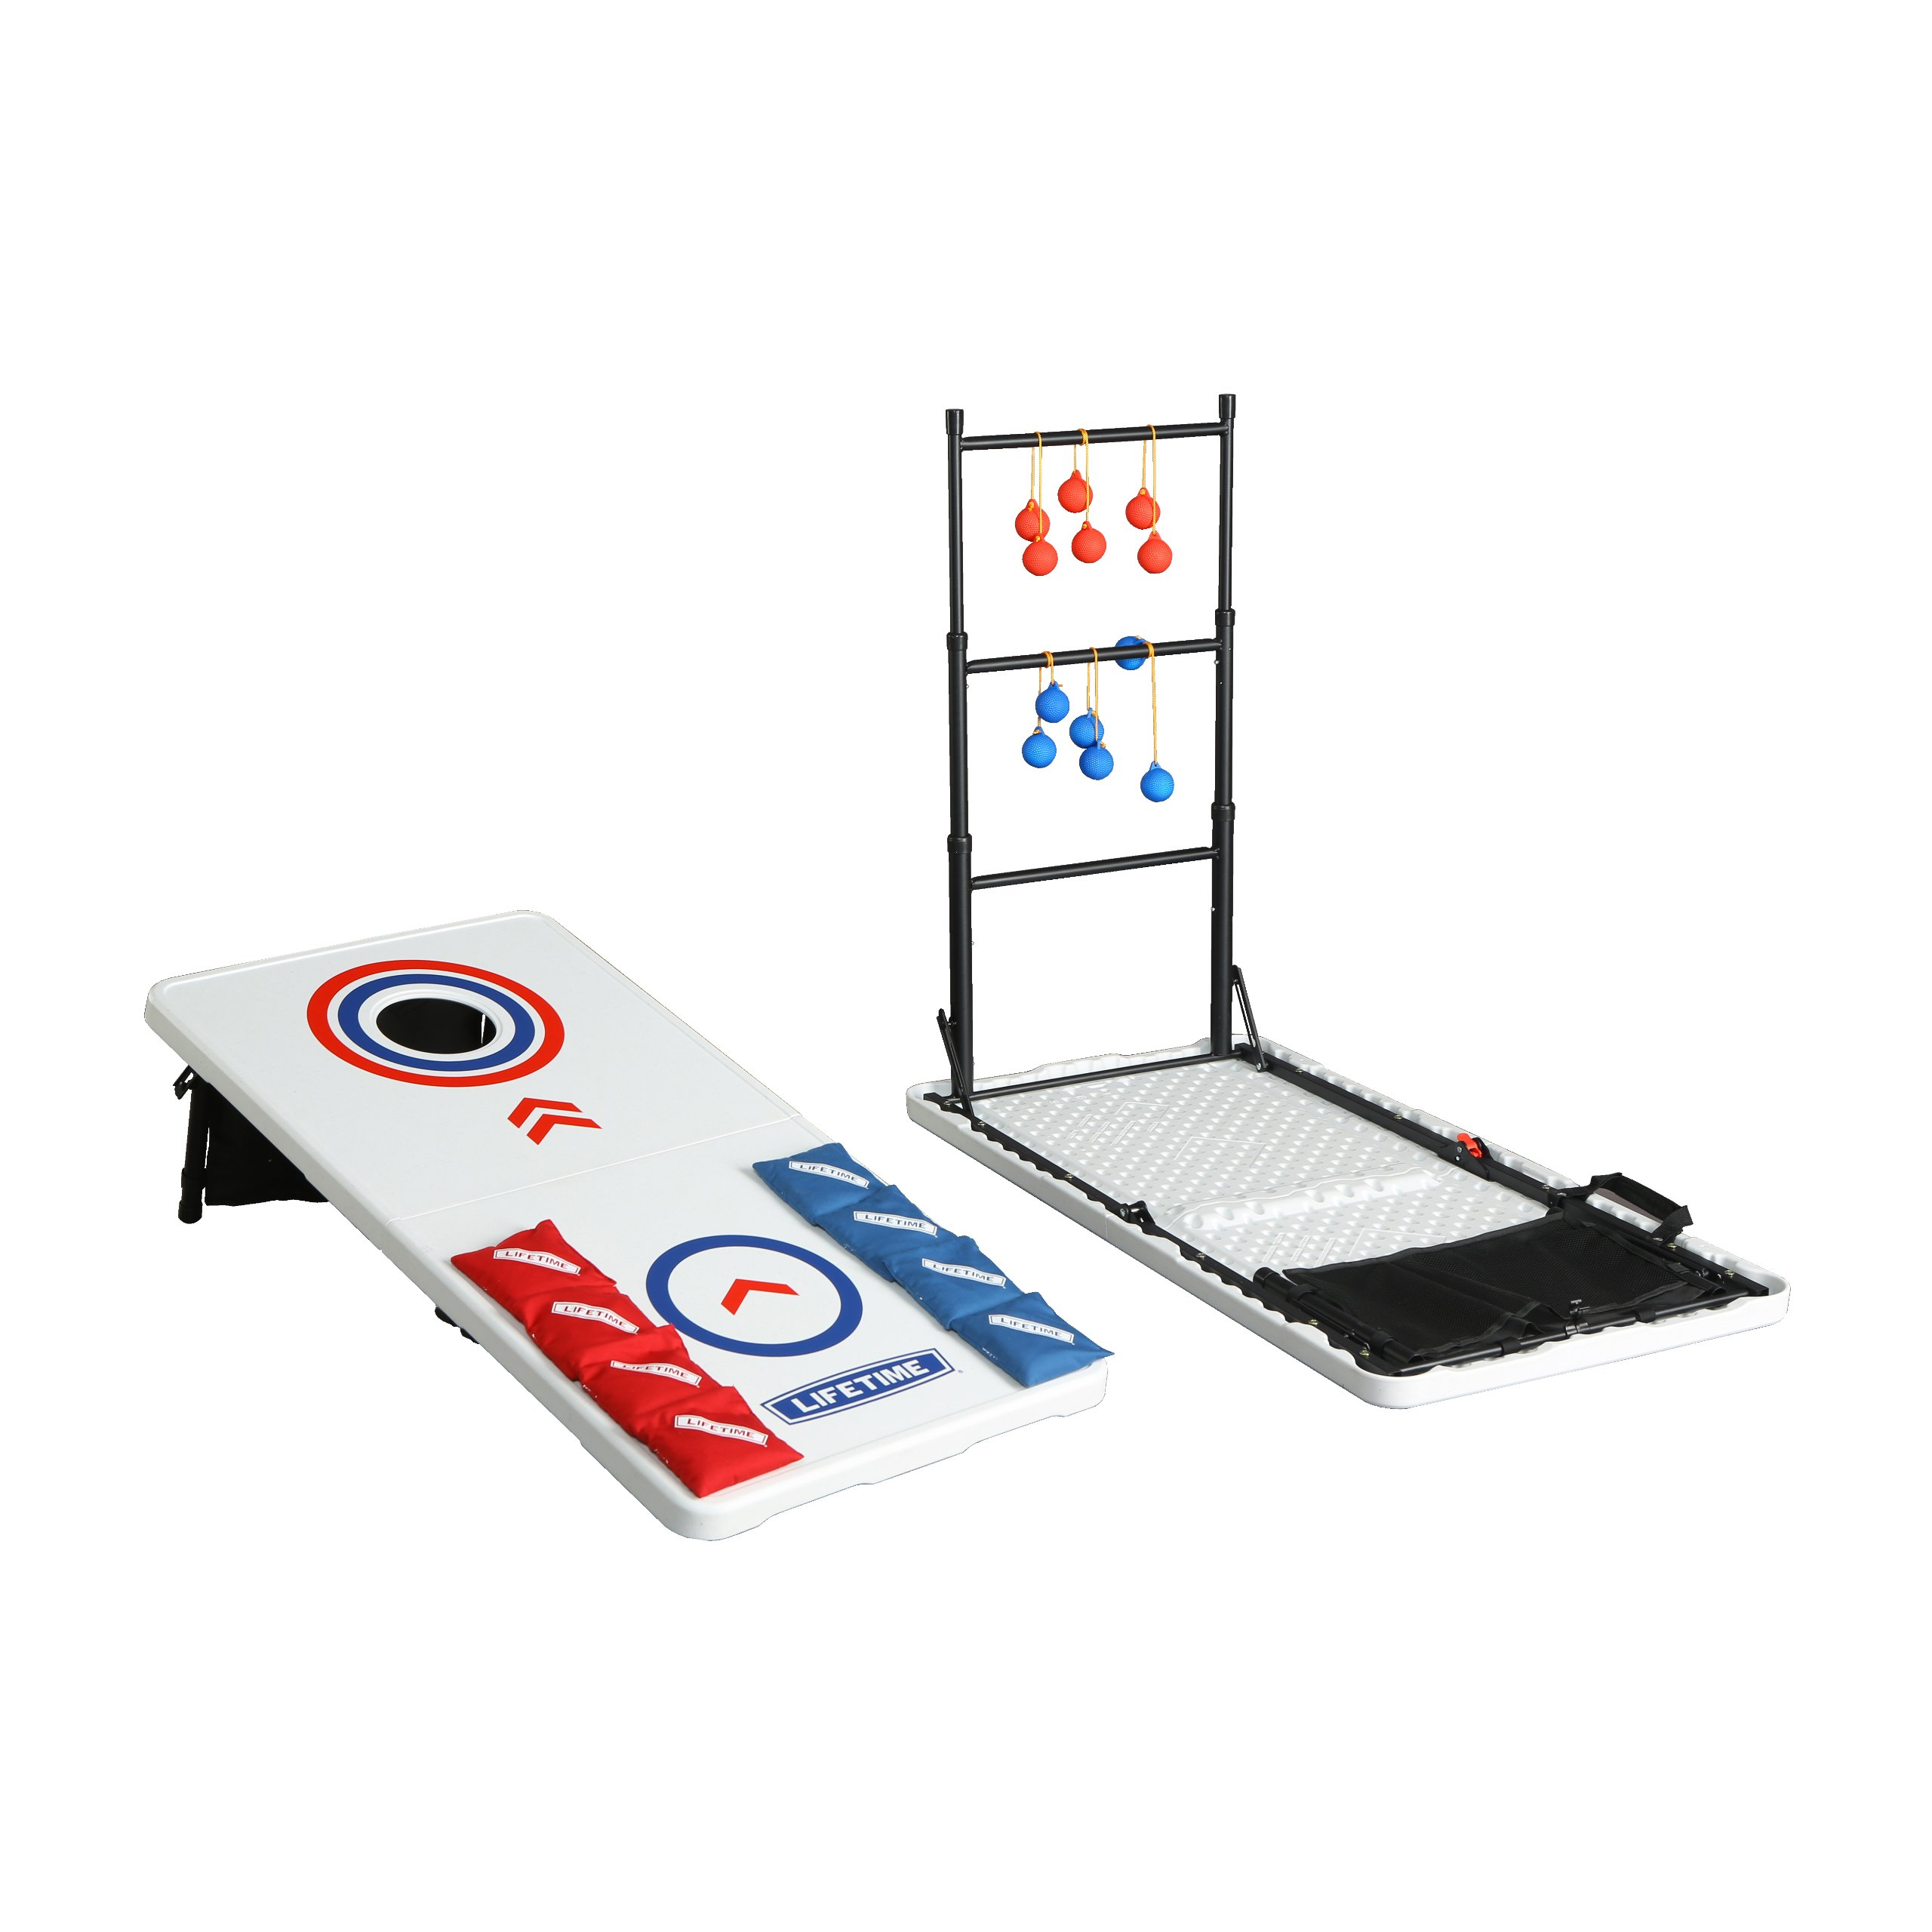 Lifetime 90466 Bean Bag Toss, Ladder Toss, Folding Tailgate Combo by Lifetime